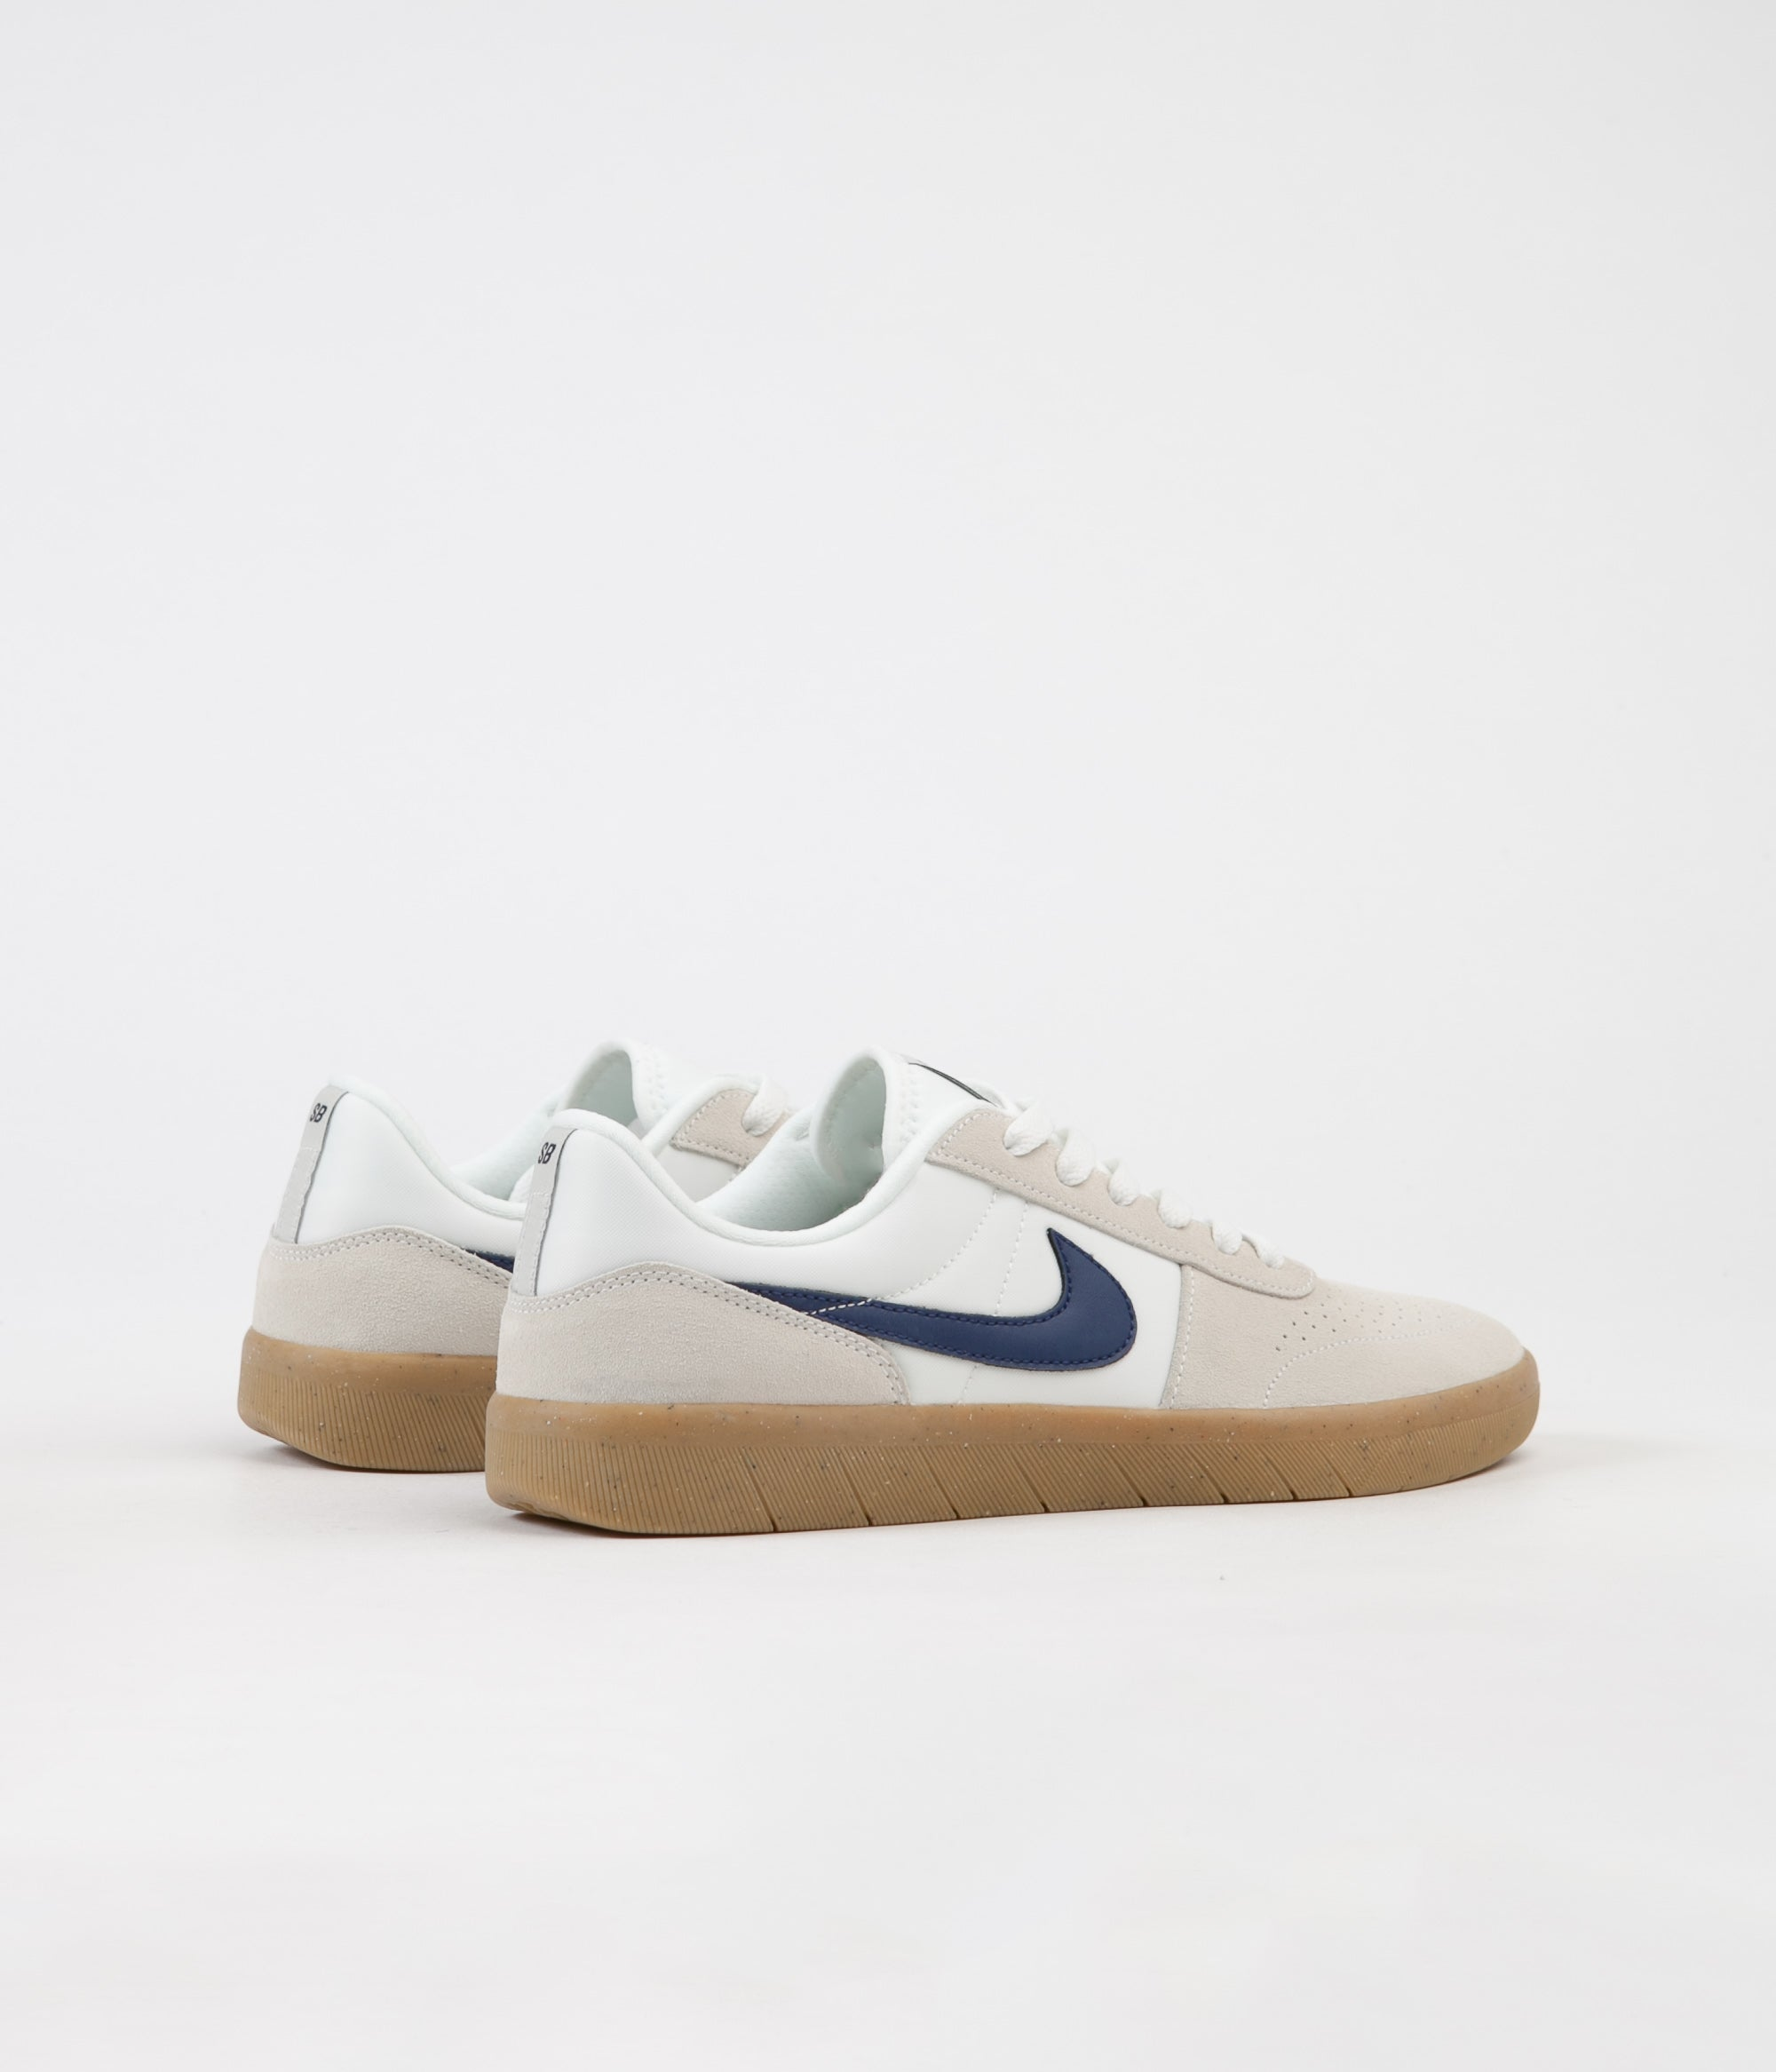 Shoes Nike Team Blue Sb Void Flatspot White Summit Classic wTCBqT1